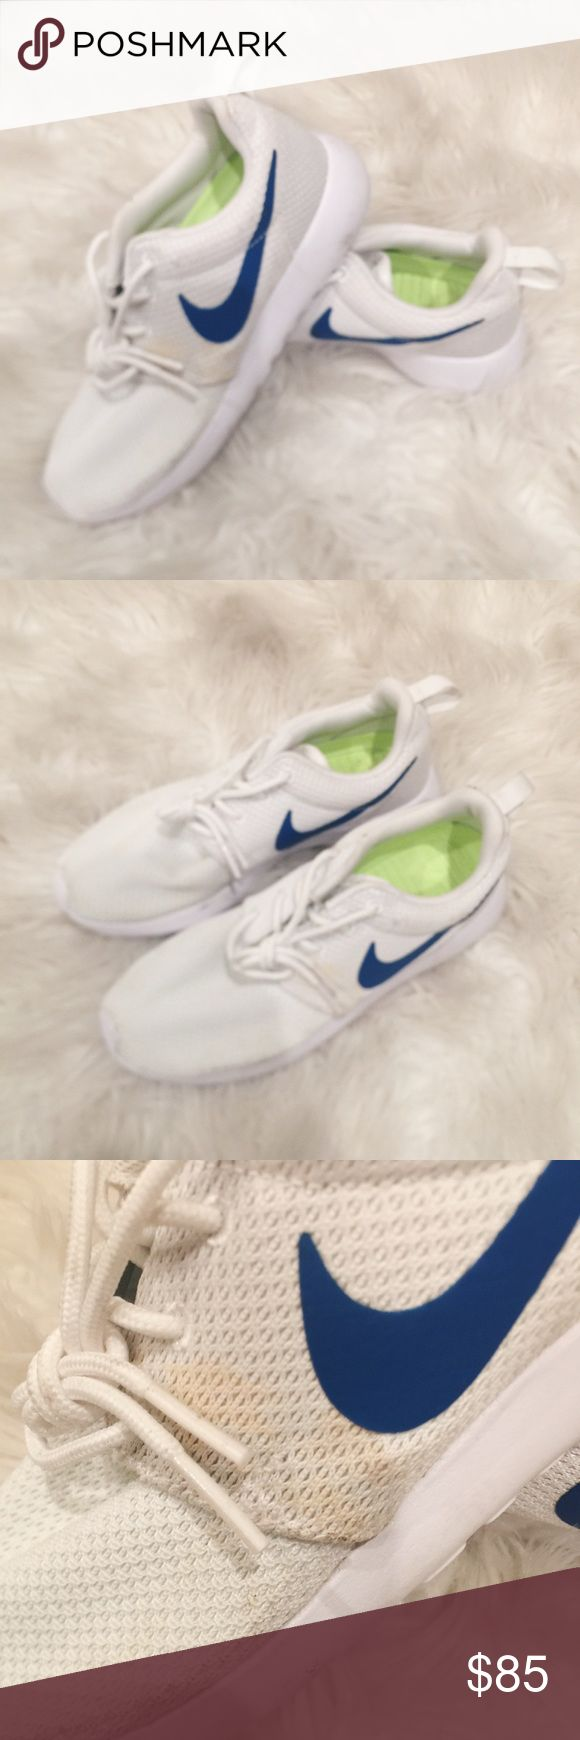 White & Blue Nike Roshes • BNWB, never worn • Nike ID'd • Flaws are shown in photos, these were in storage since I had them made, I've never worn them out, I'm 100% sure these marks and stains can be washed out • Price reflects flaws Nike Shoes Athletic Shoes